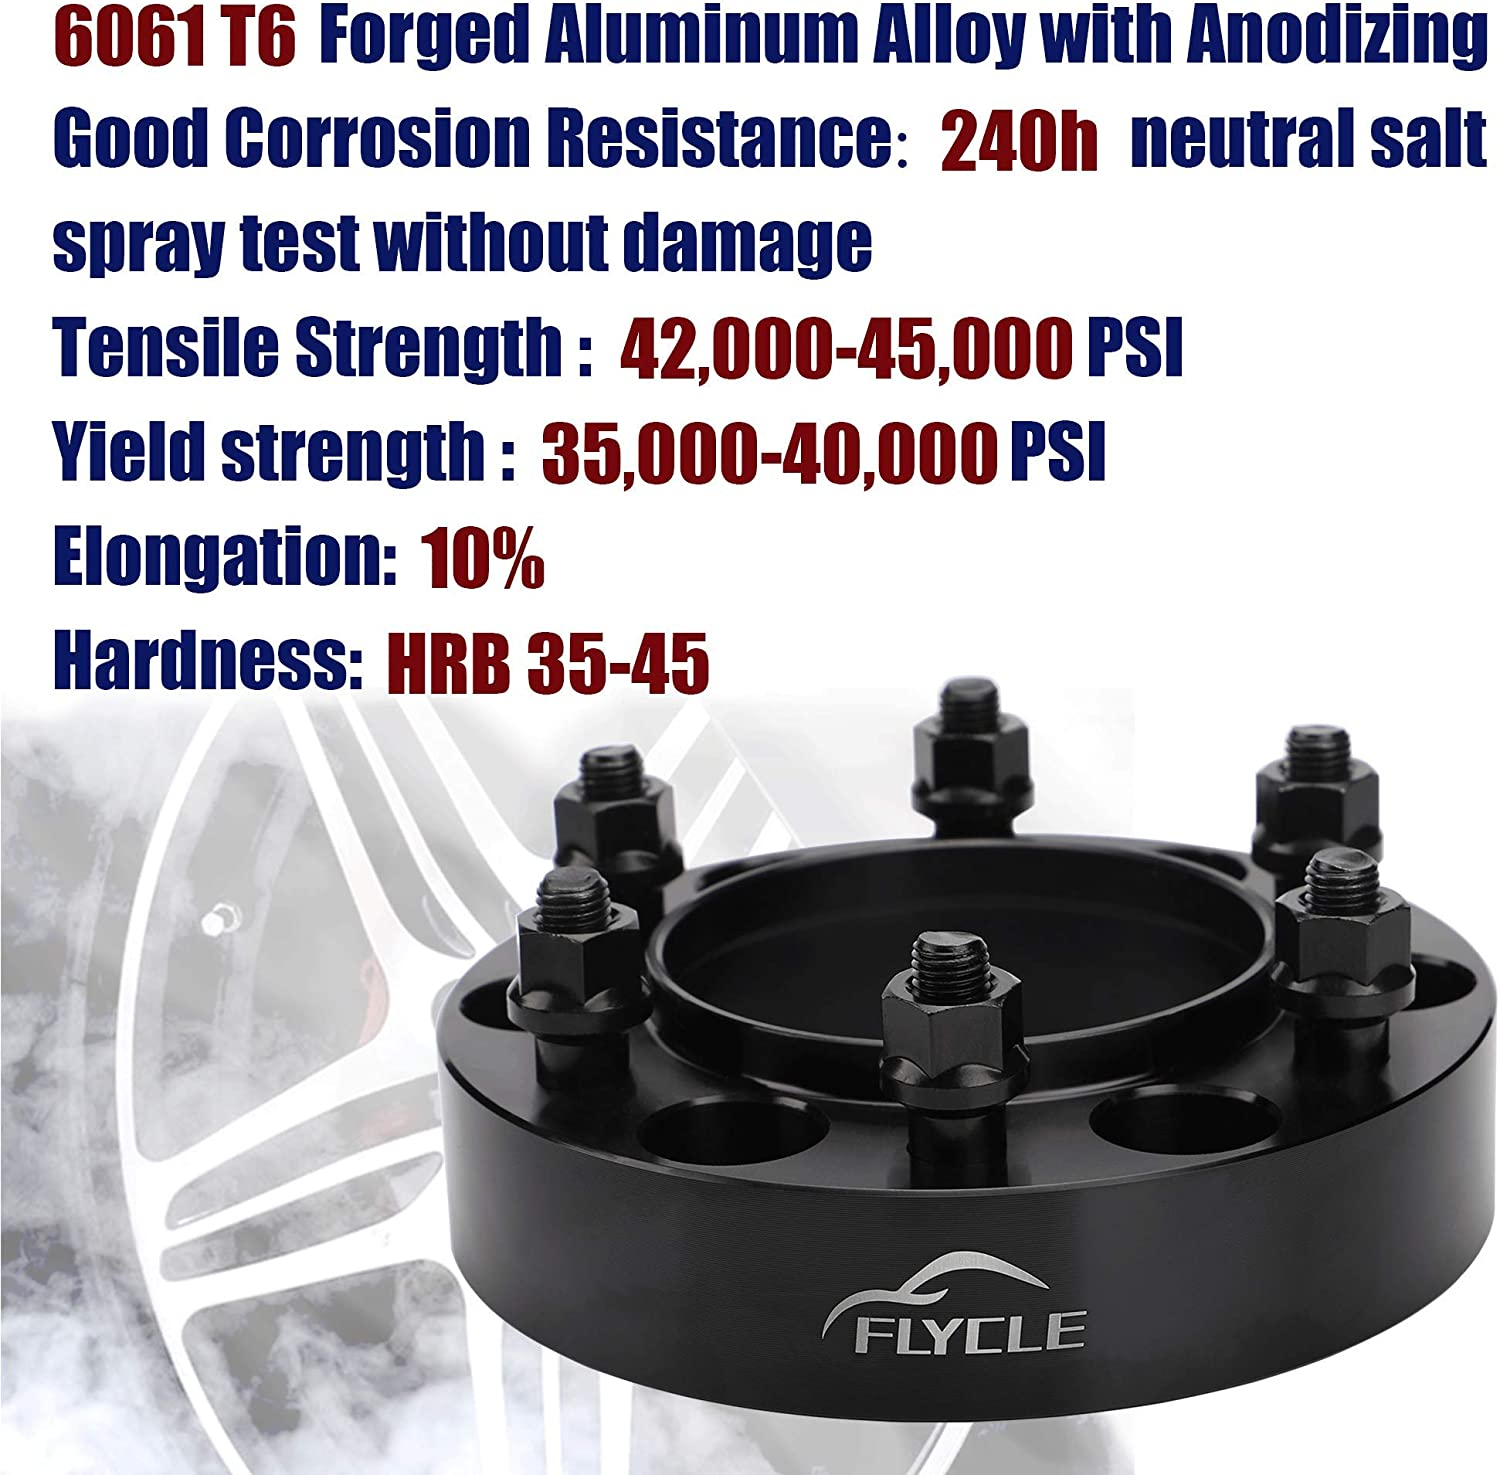 FLYCLE 1.25 inch Wheel Spacers 6x5.5 Compatible with Tacoma 4Runner Tundra FJ Cruise Fortuner with 106mm Center Bore /& 12x1.5 Studs